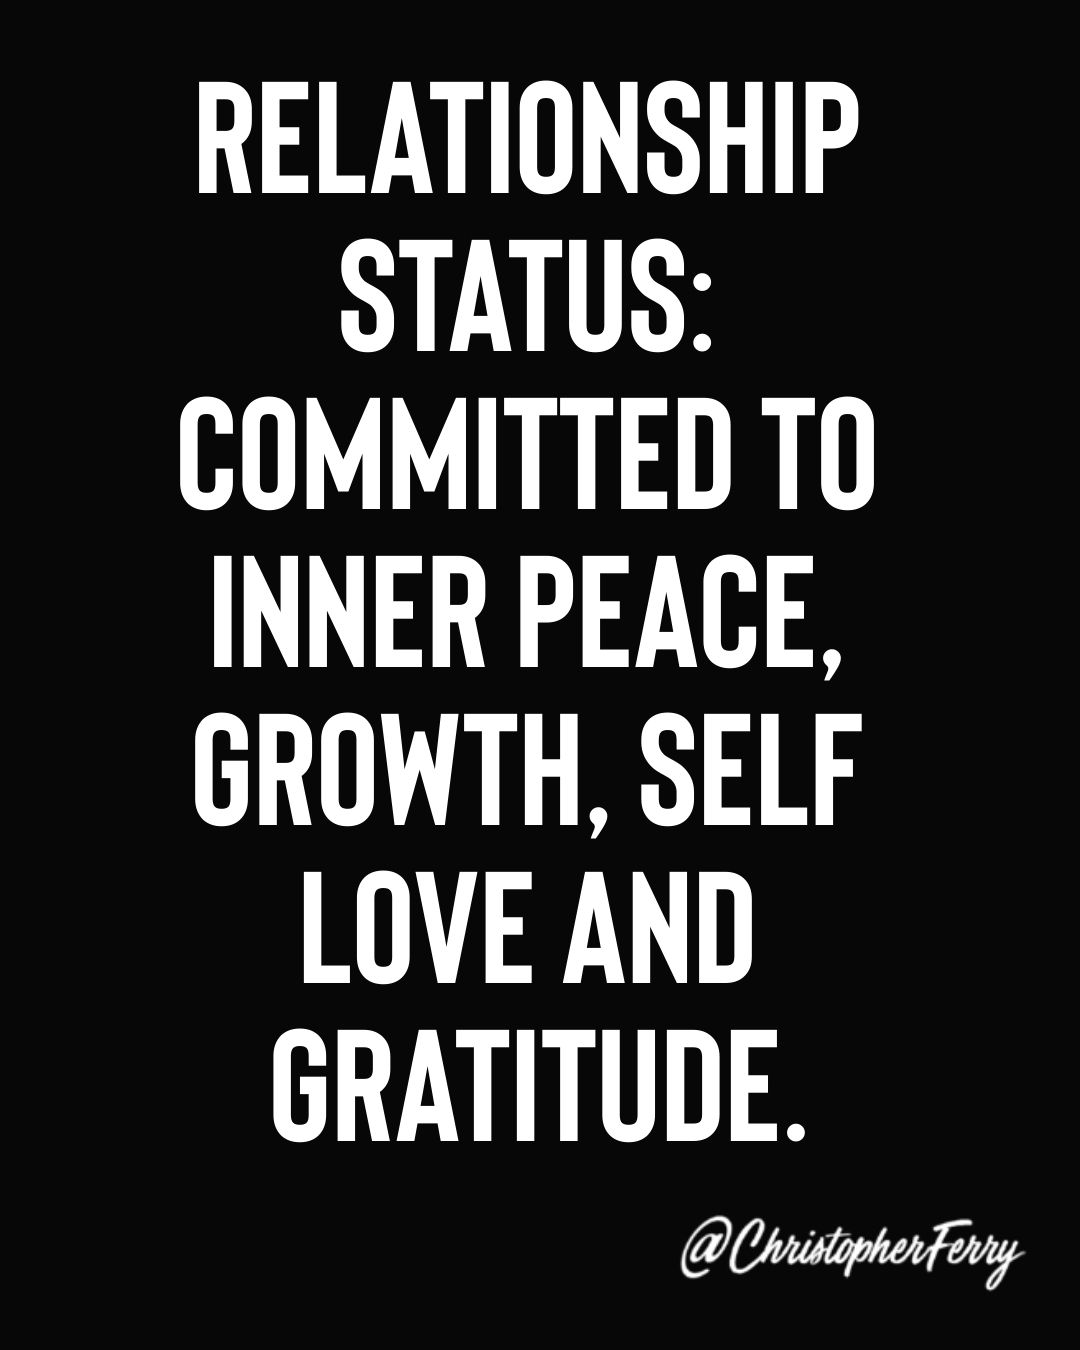 Relationship Status: Committed to inner peace, self love and gratitude.